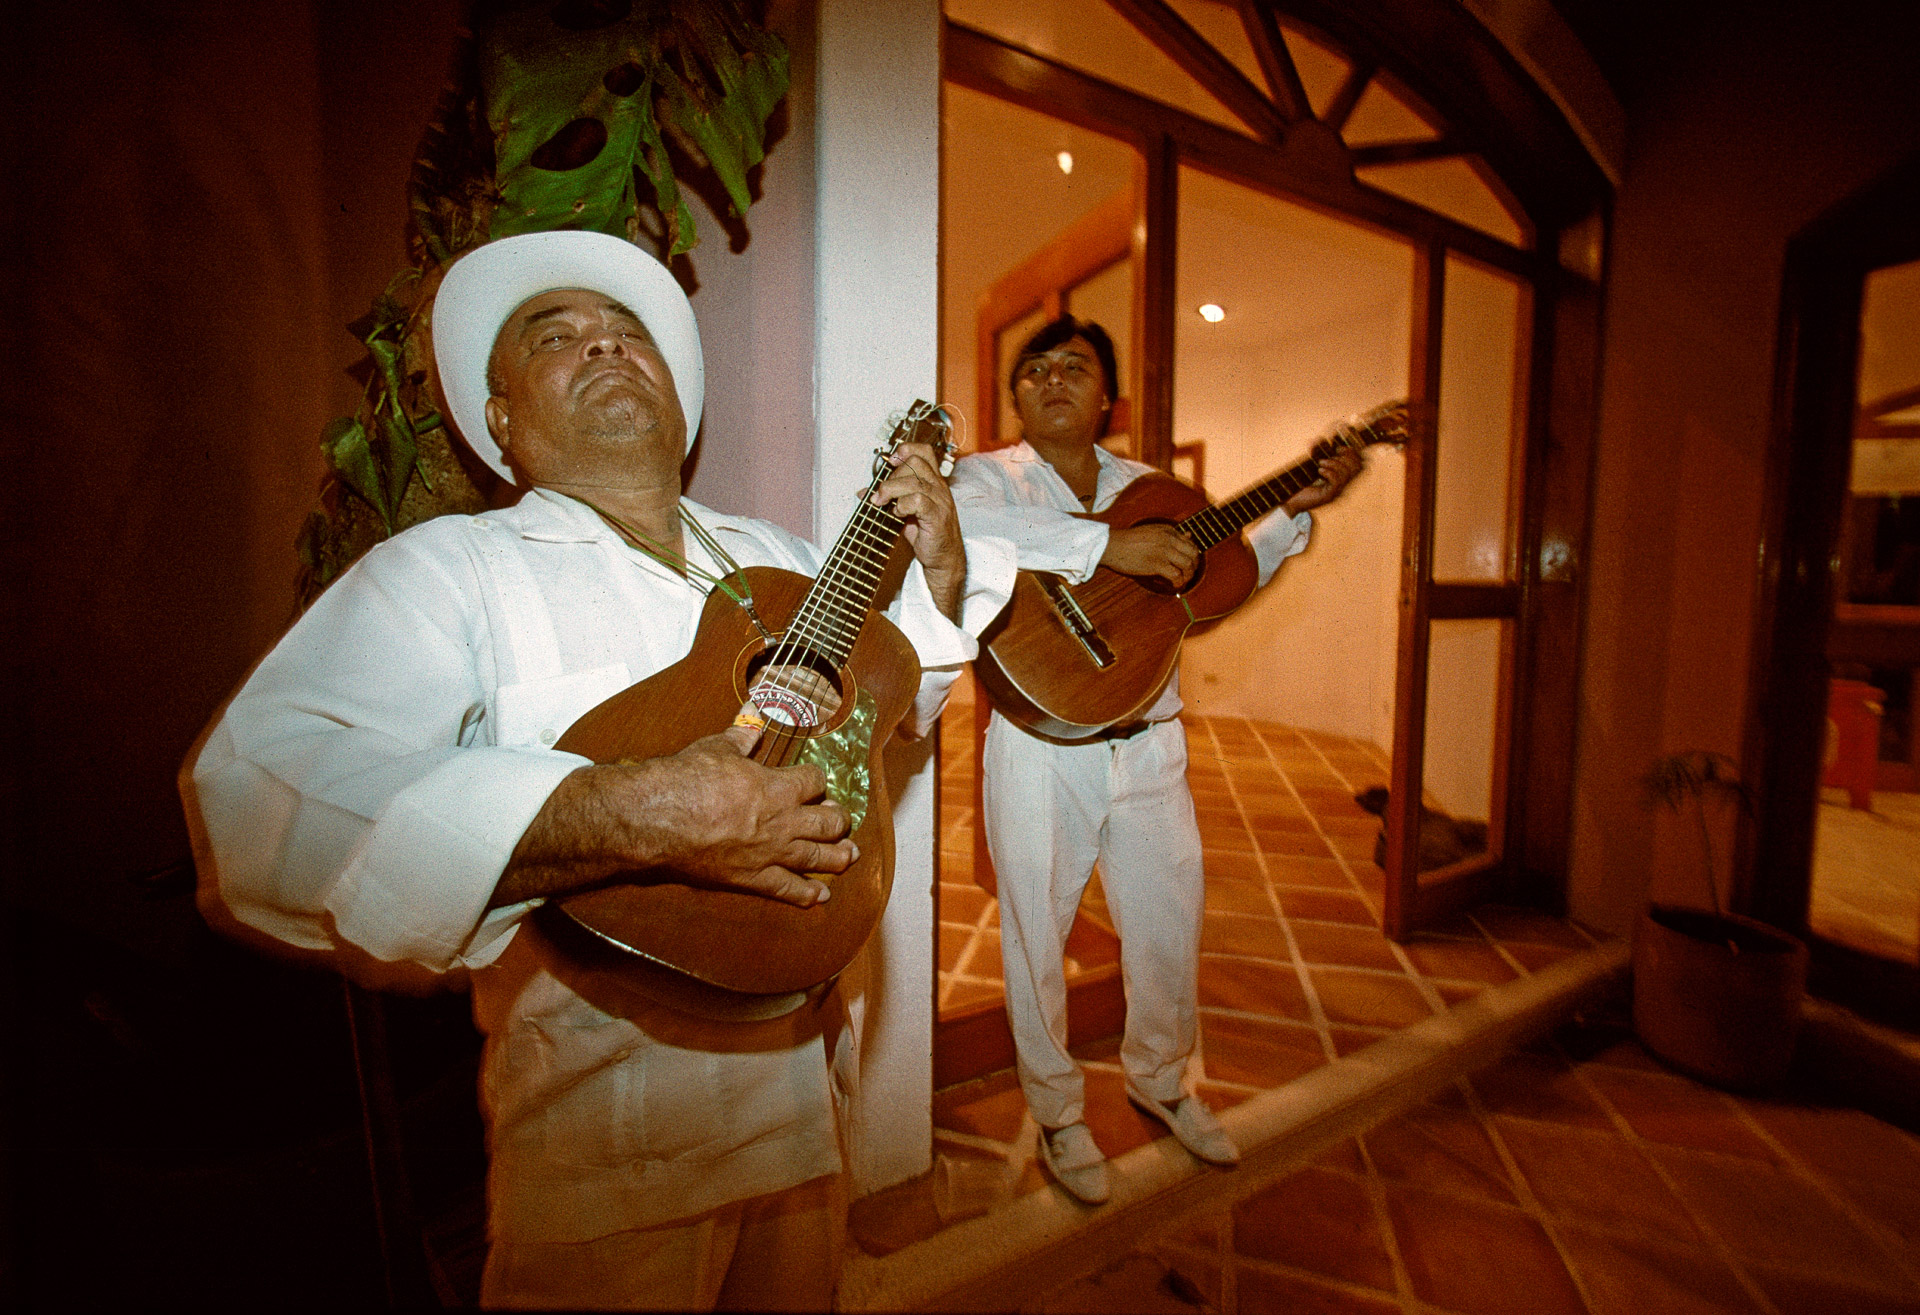 Musicians playing guitar in Playa del Carmen in Mexico